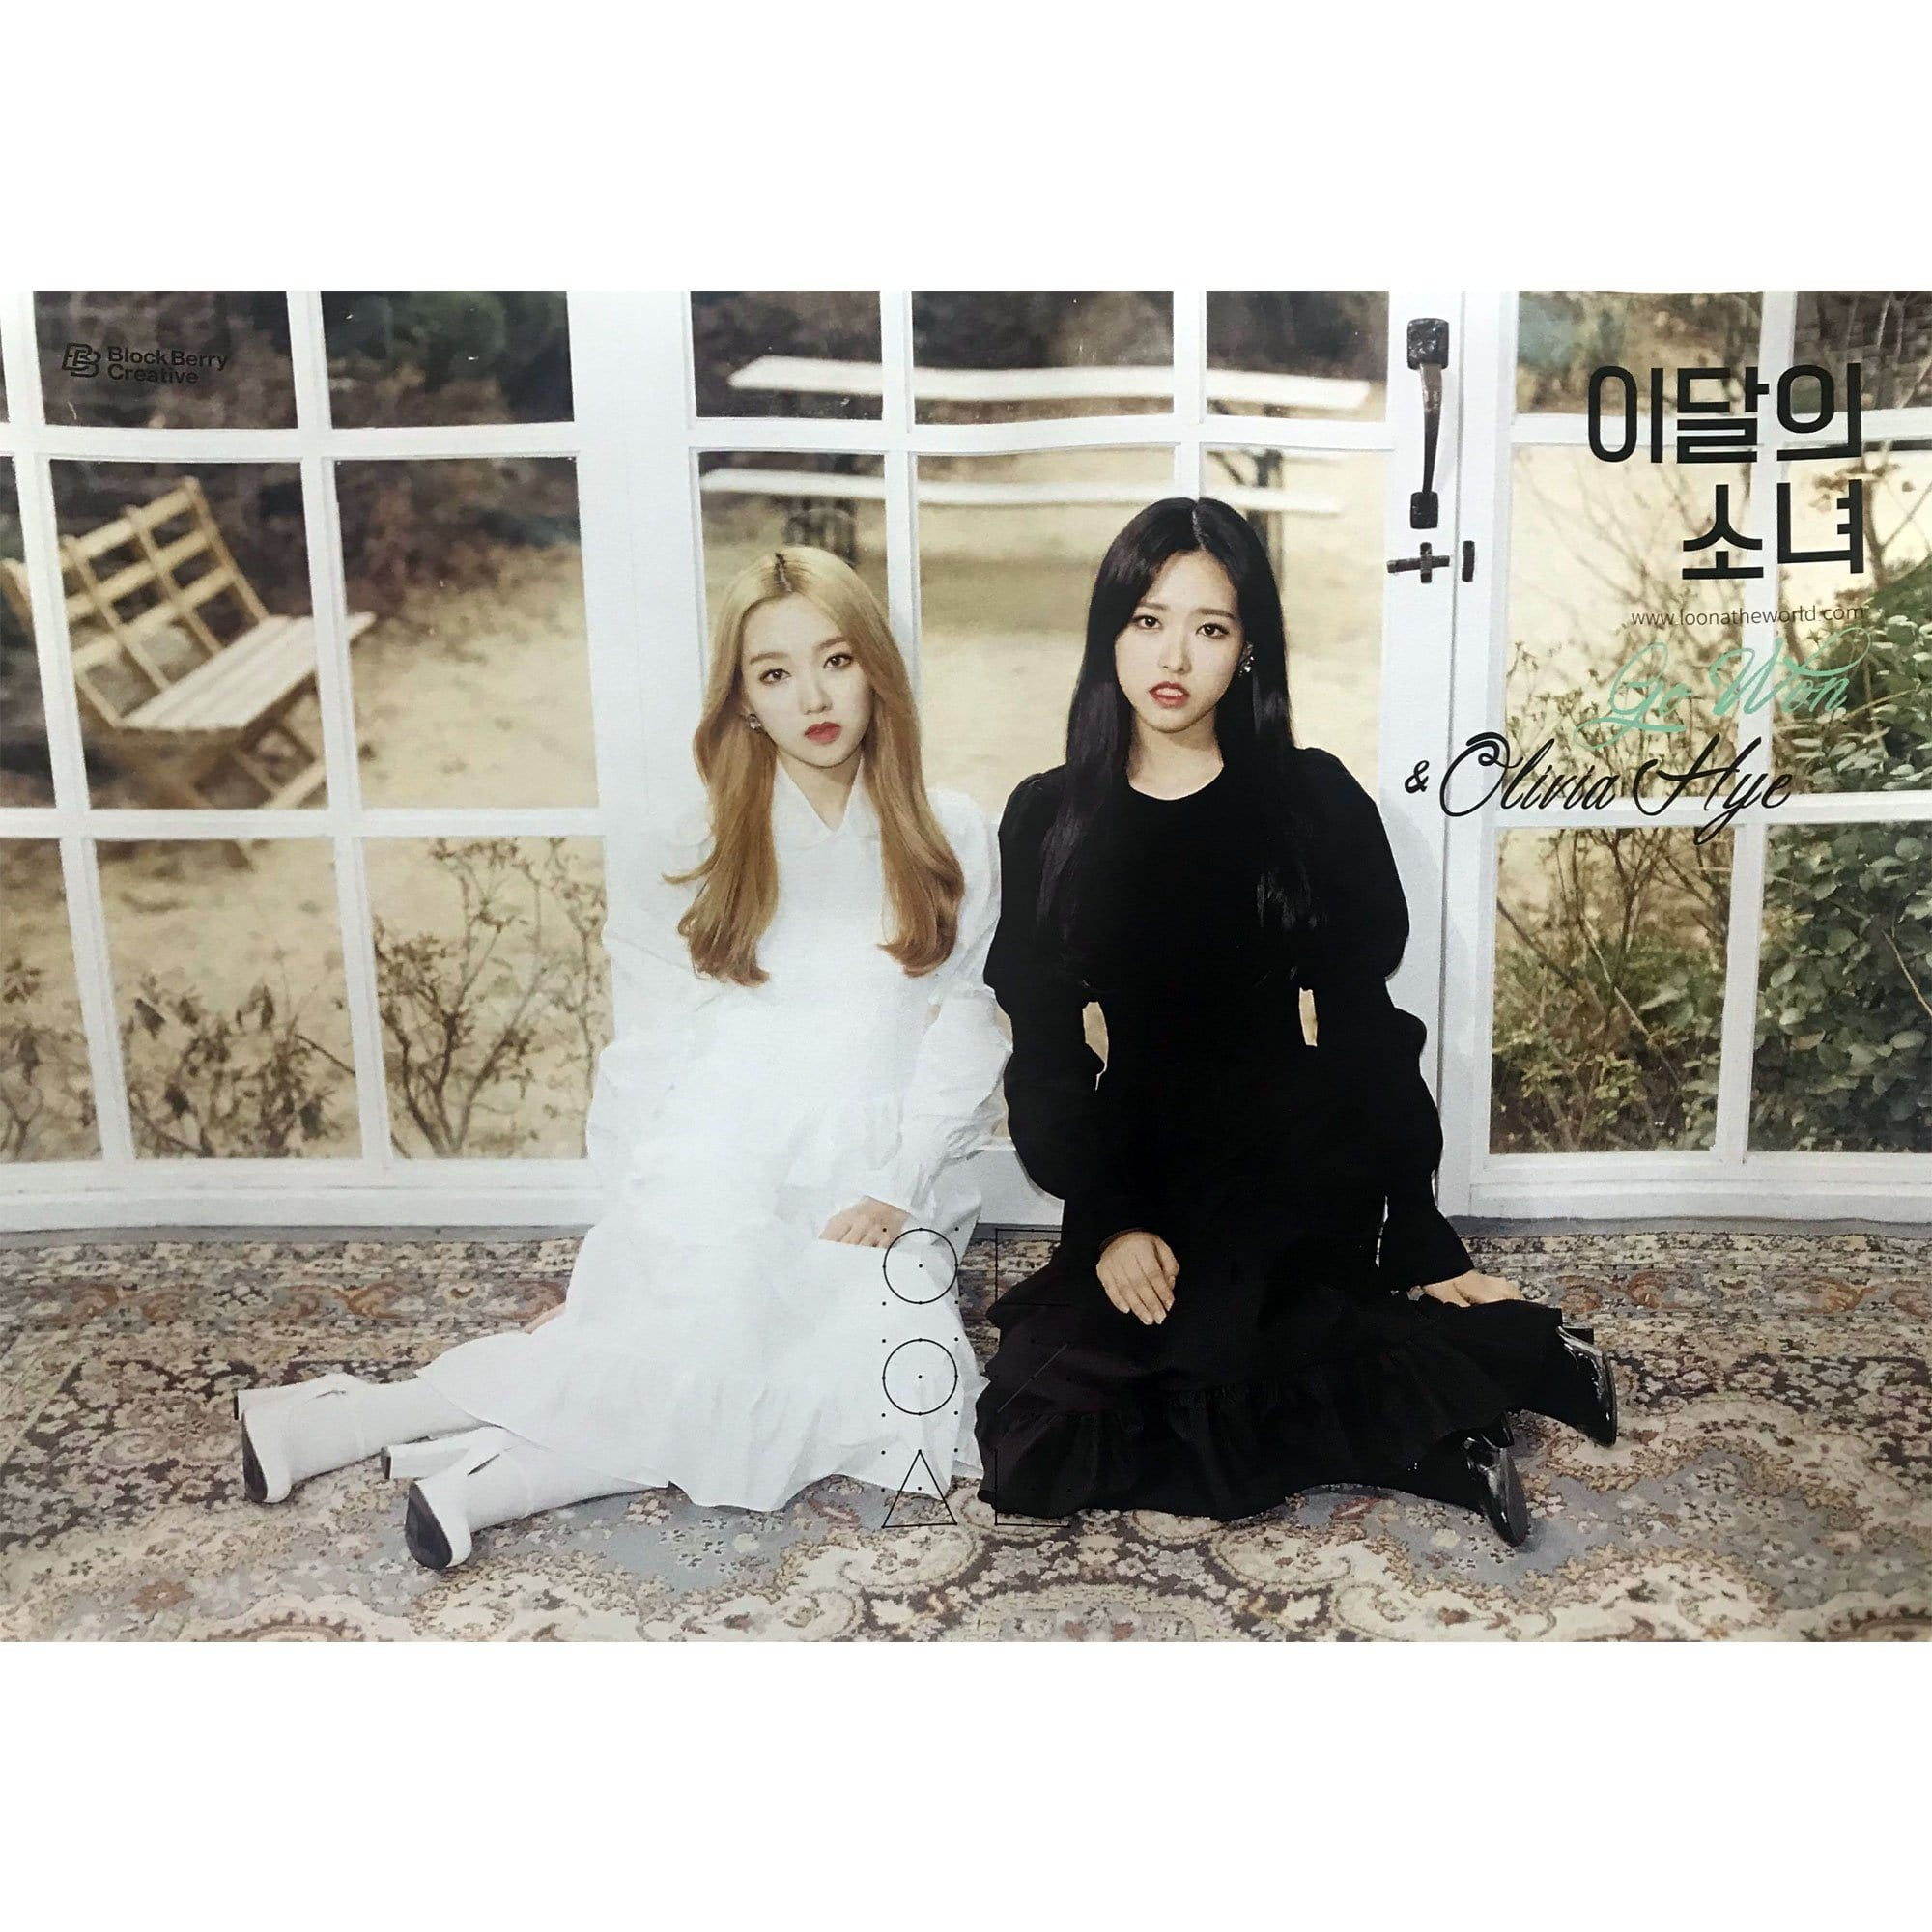 LOONA | Gowon & Olivia Hye | POSTER